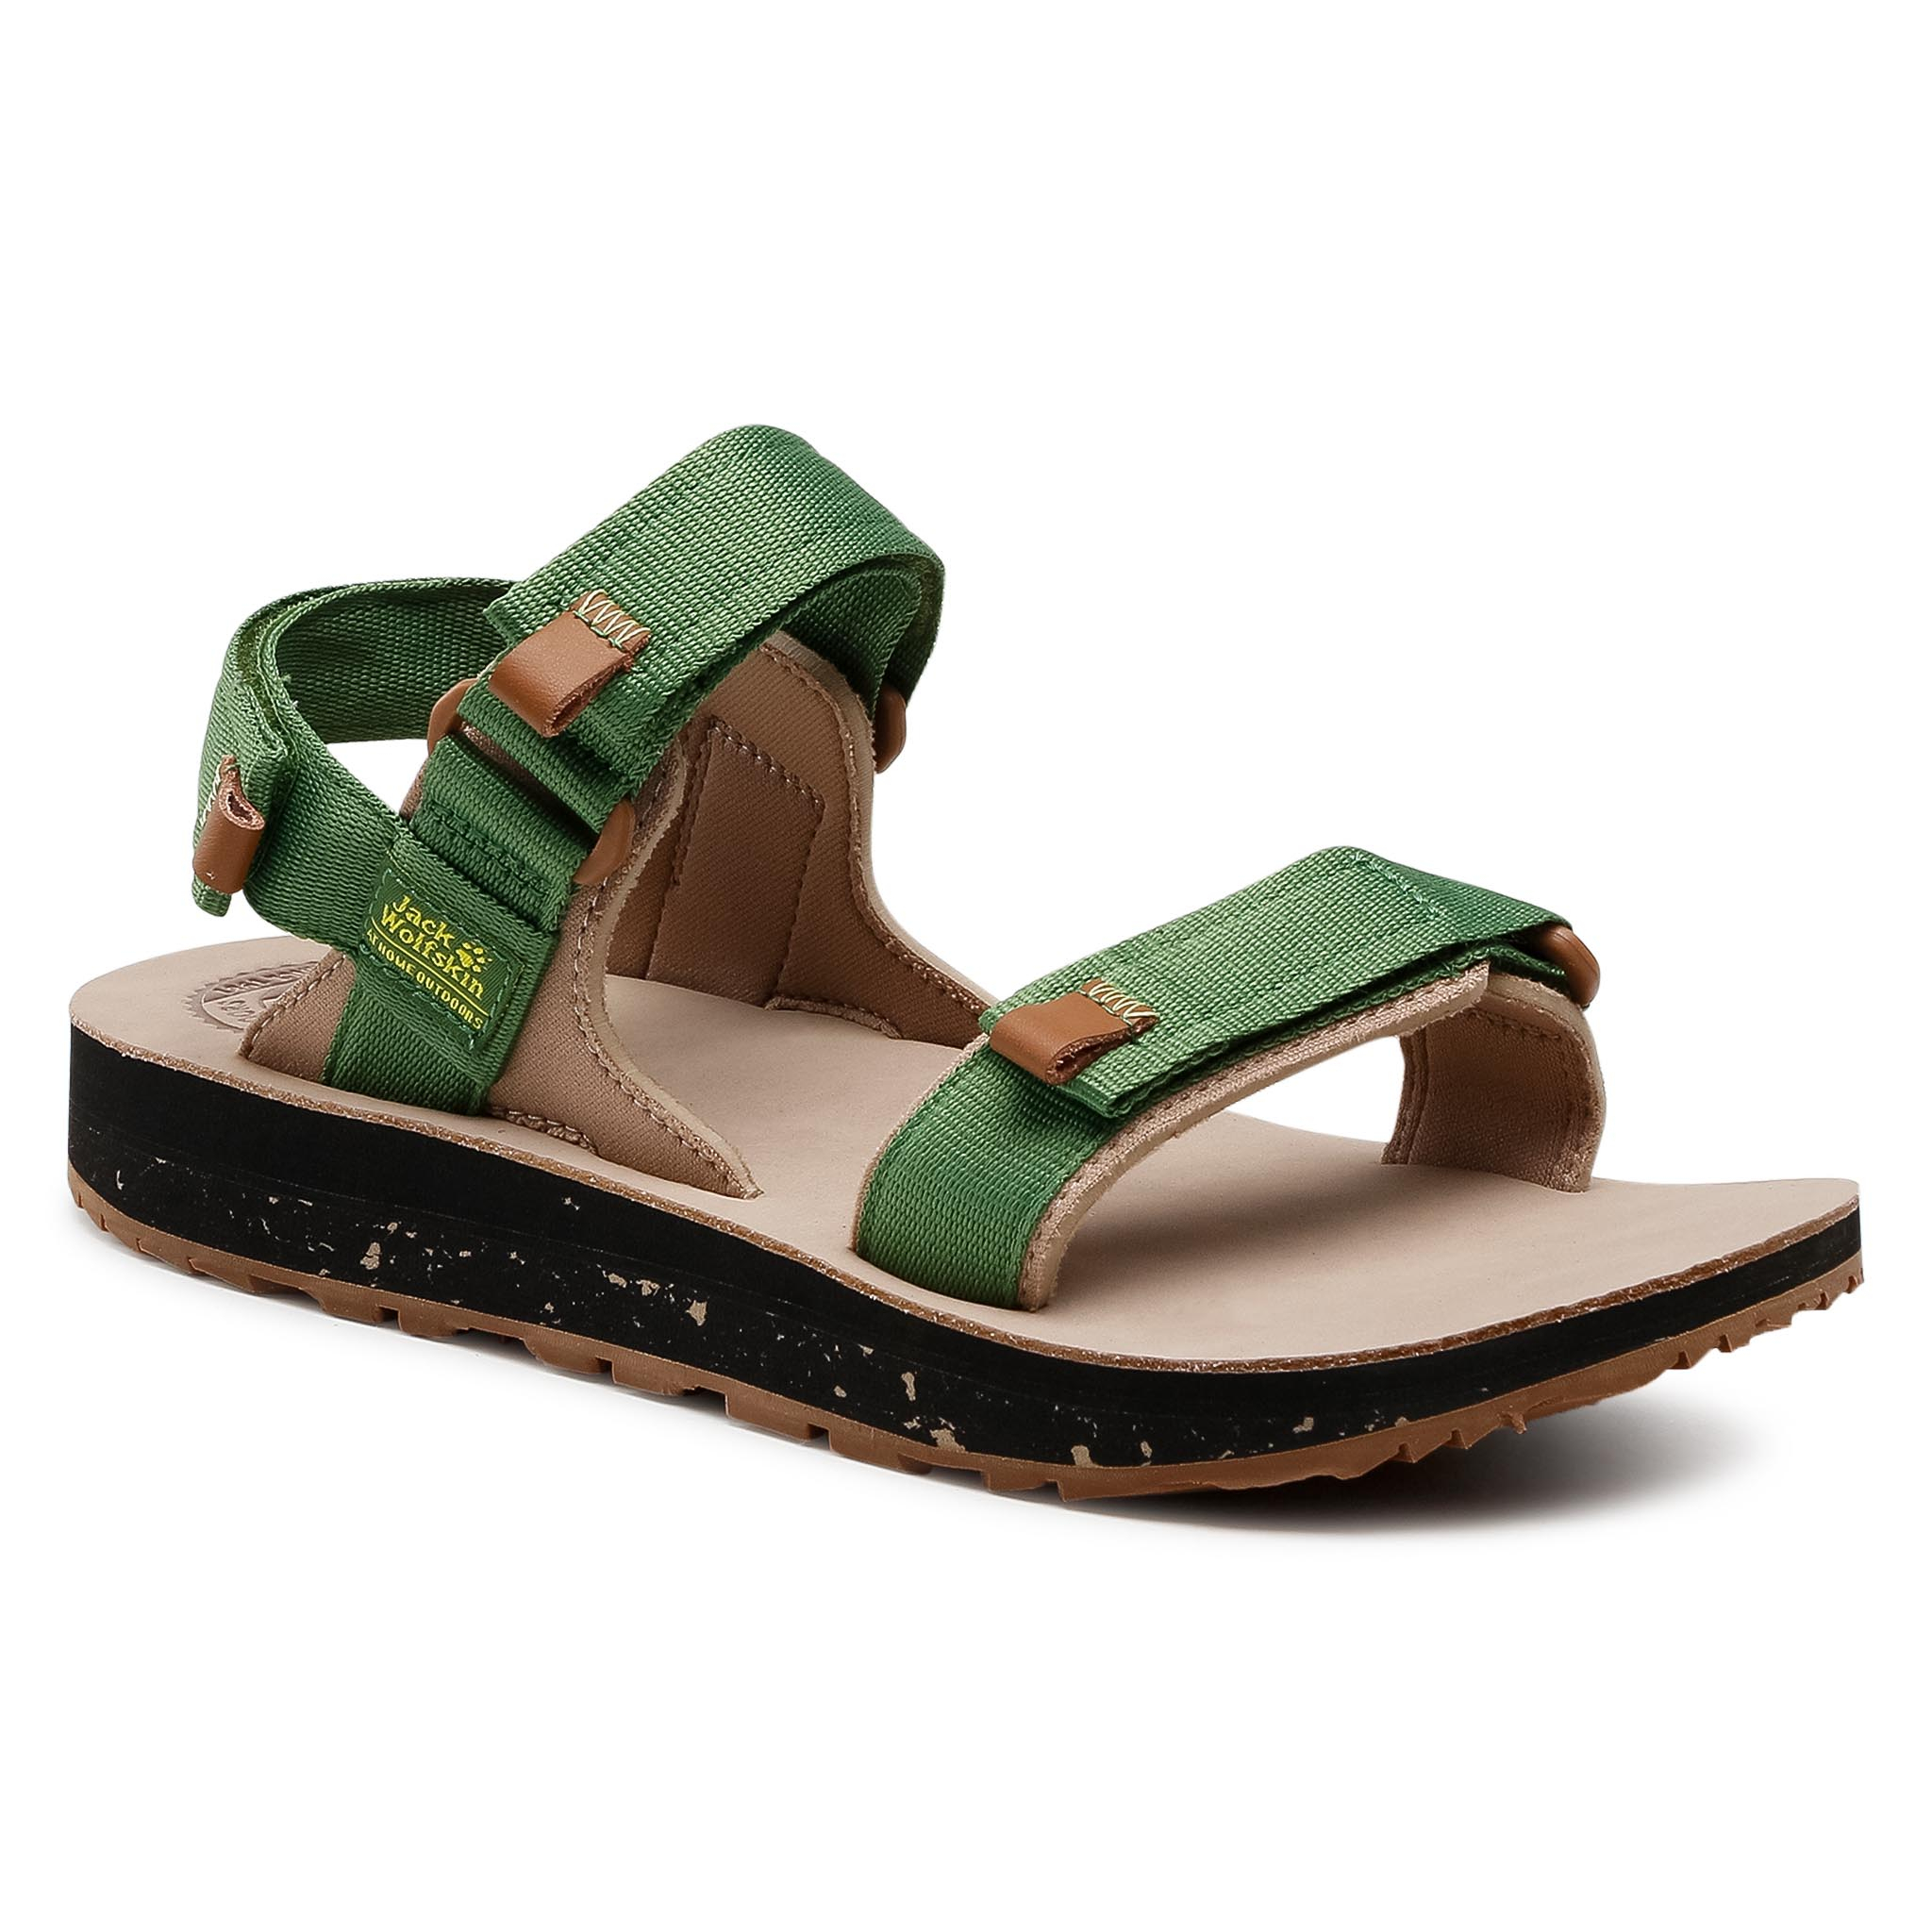 Sandales JACK WOLFSKIN - Outfreshy Deluxe Sandal M 4039431 Green/Brown